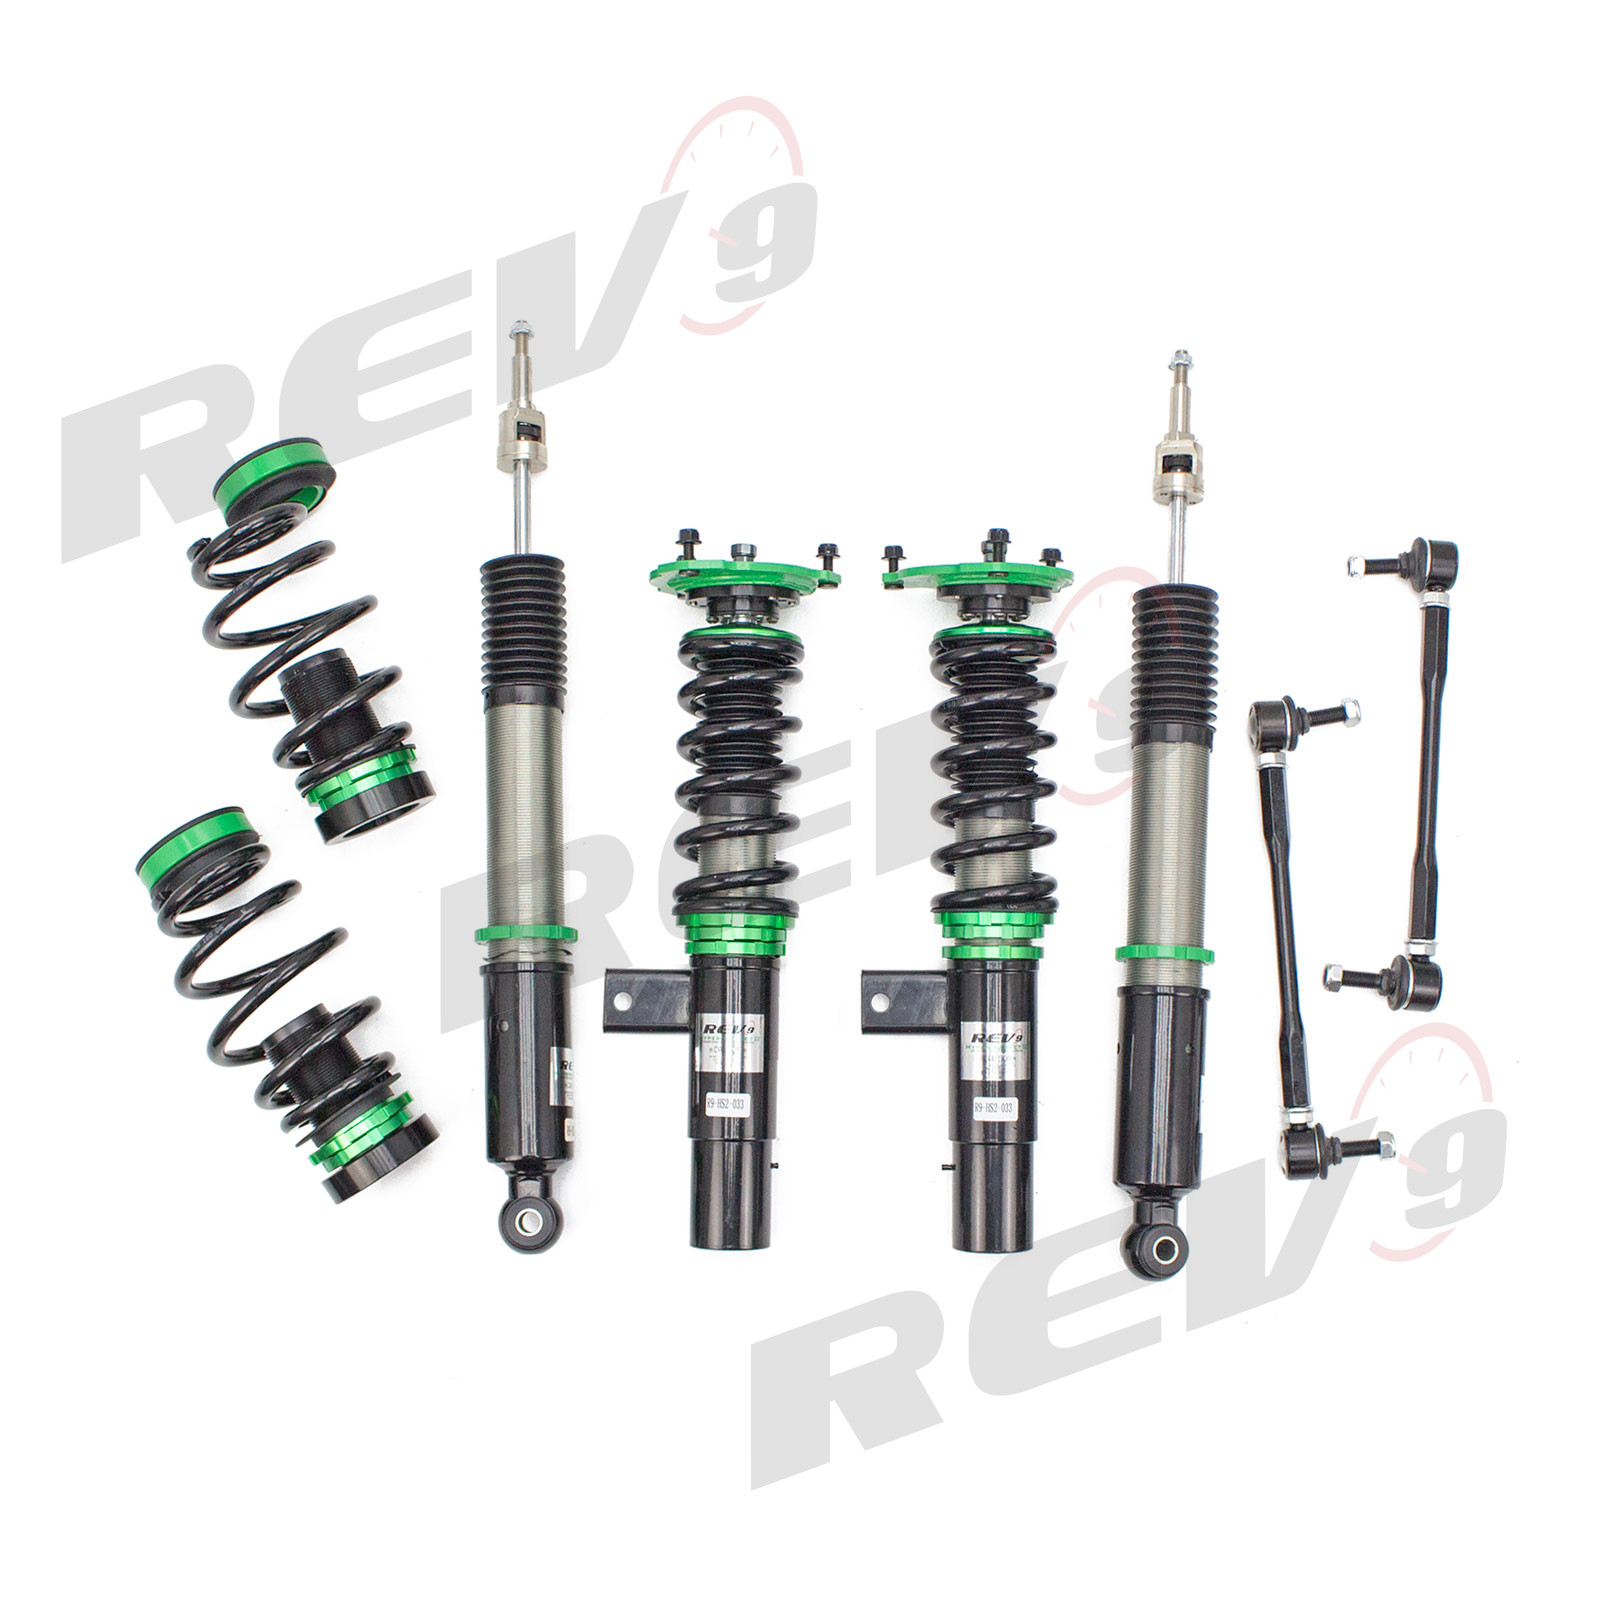 Rev9Power: Lowering Kit for Audi A3 / A3 QUATTRO (8P) 2006